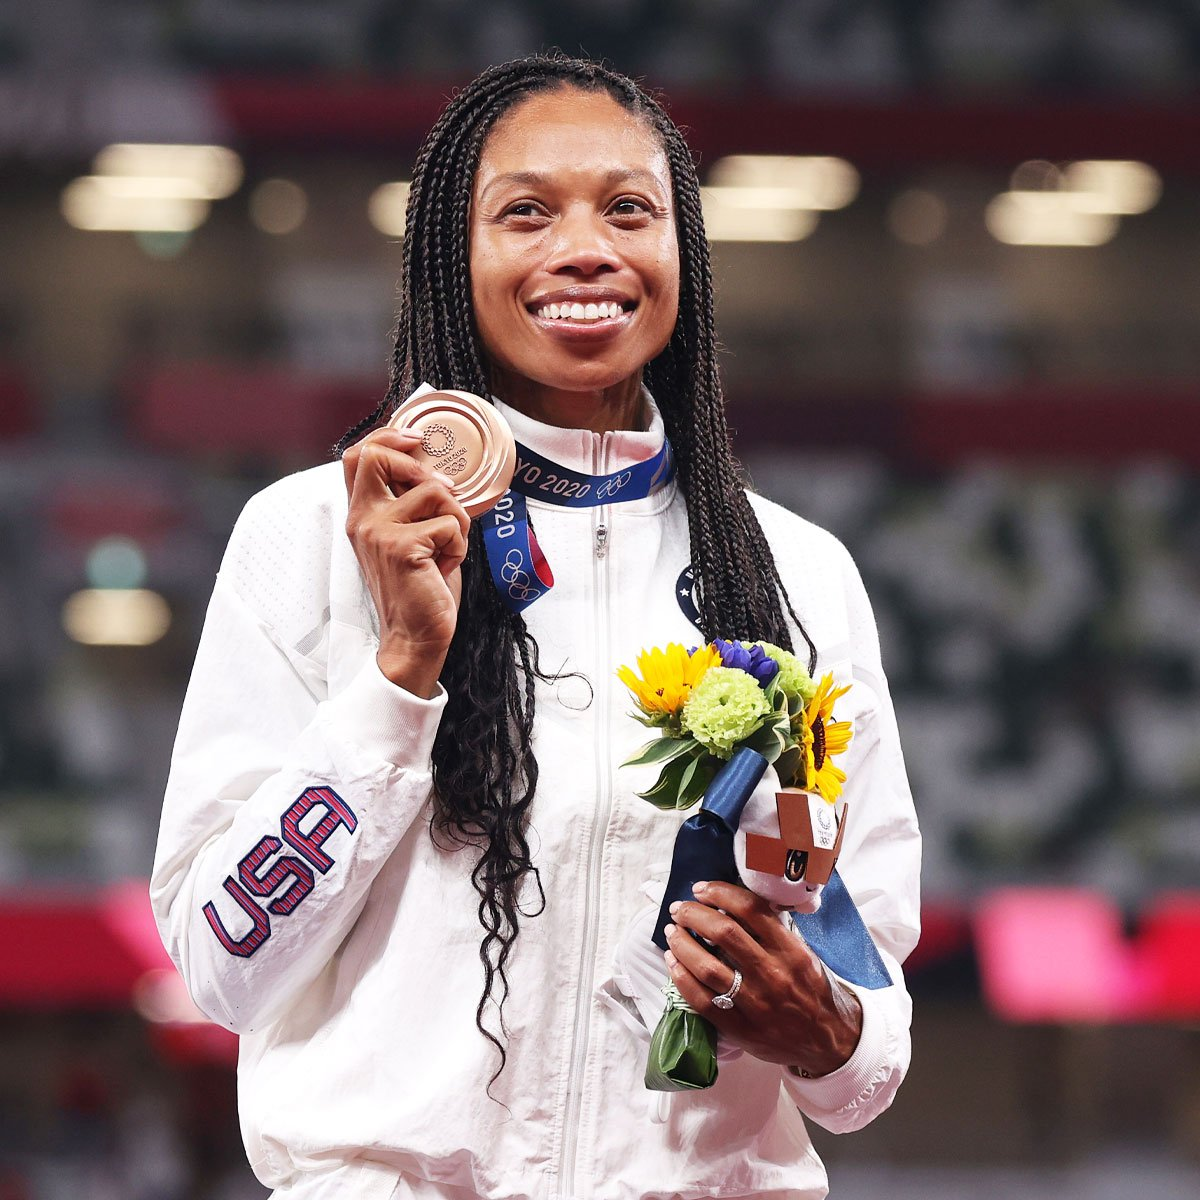 Track Star Allyson Felix's Latest Olympics Win Cements Her Spot in History